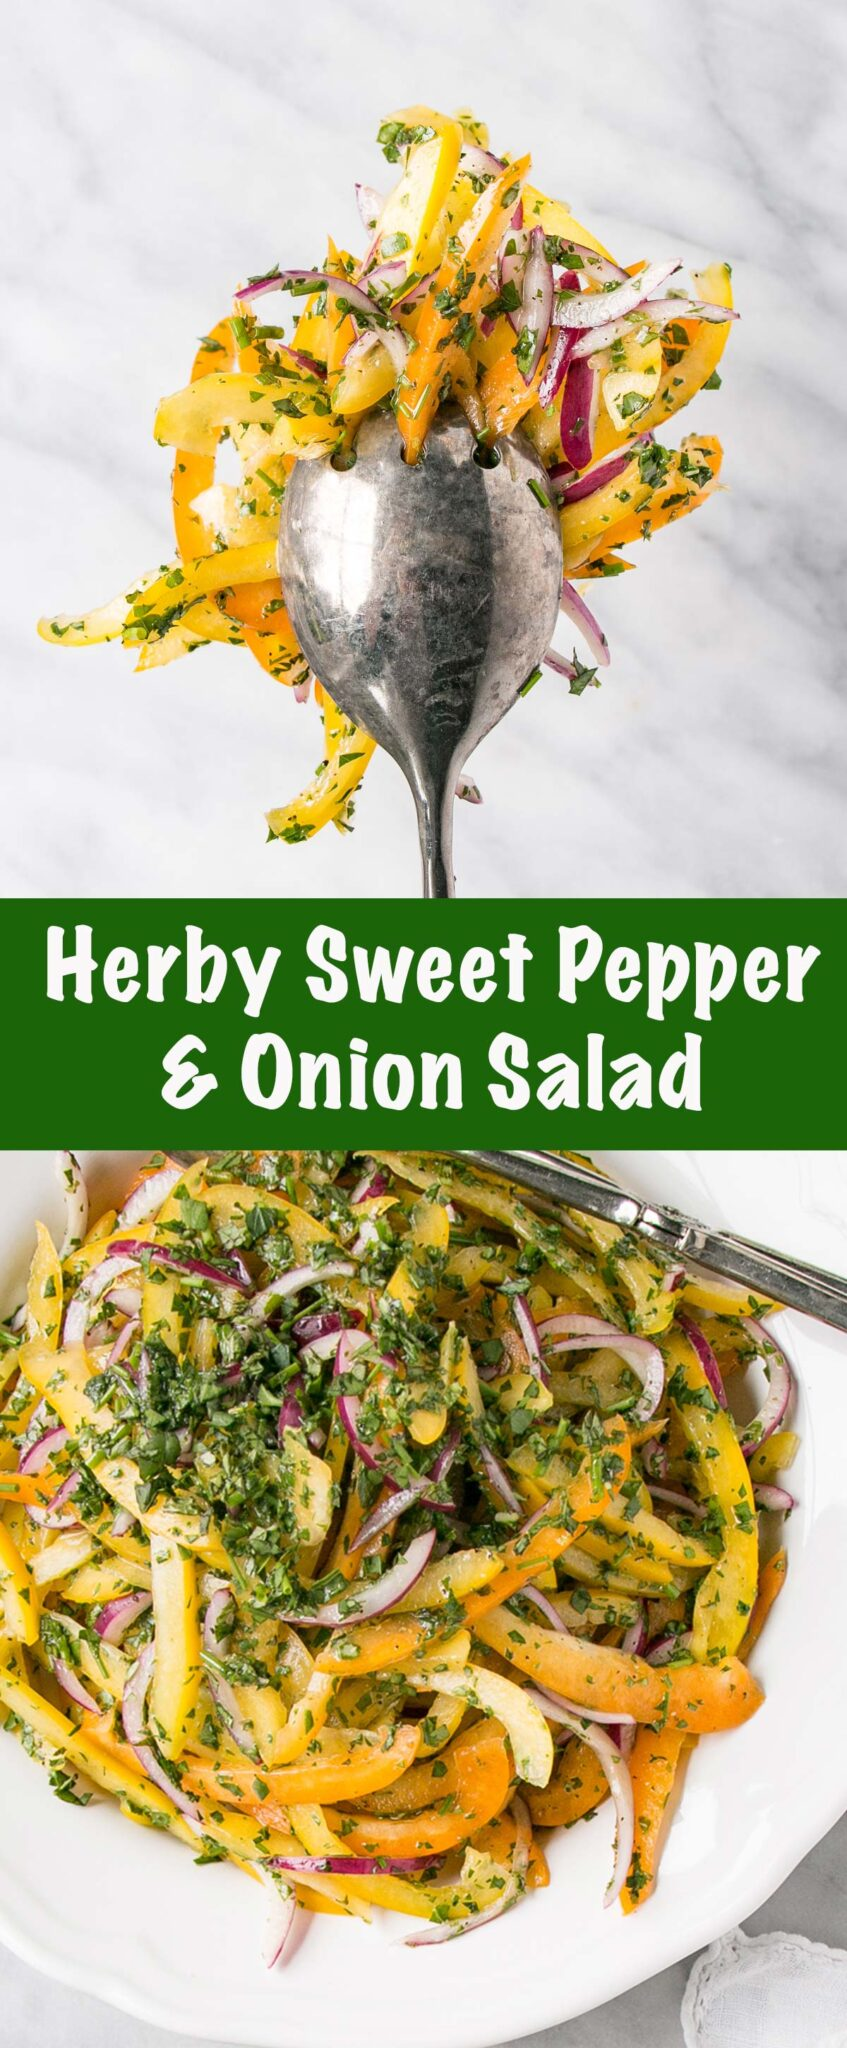 Herby Sweet Pepper and Onion Salad long collage.